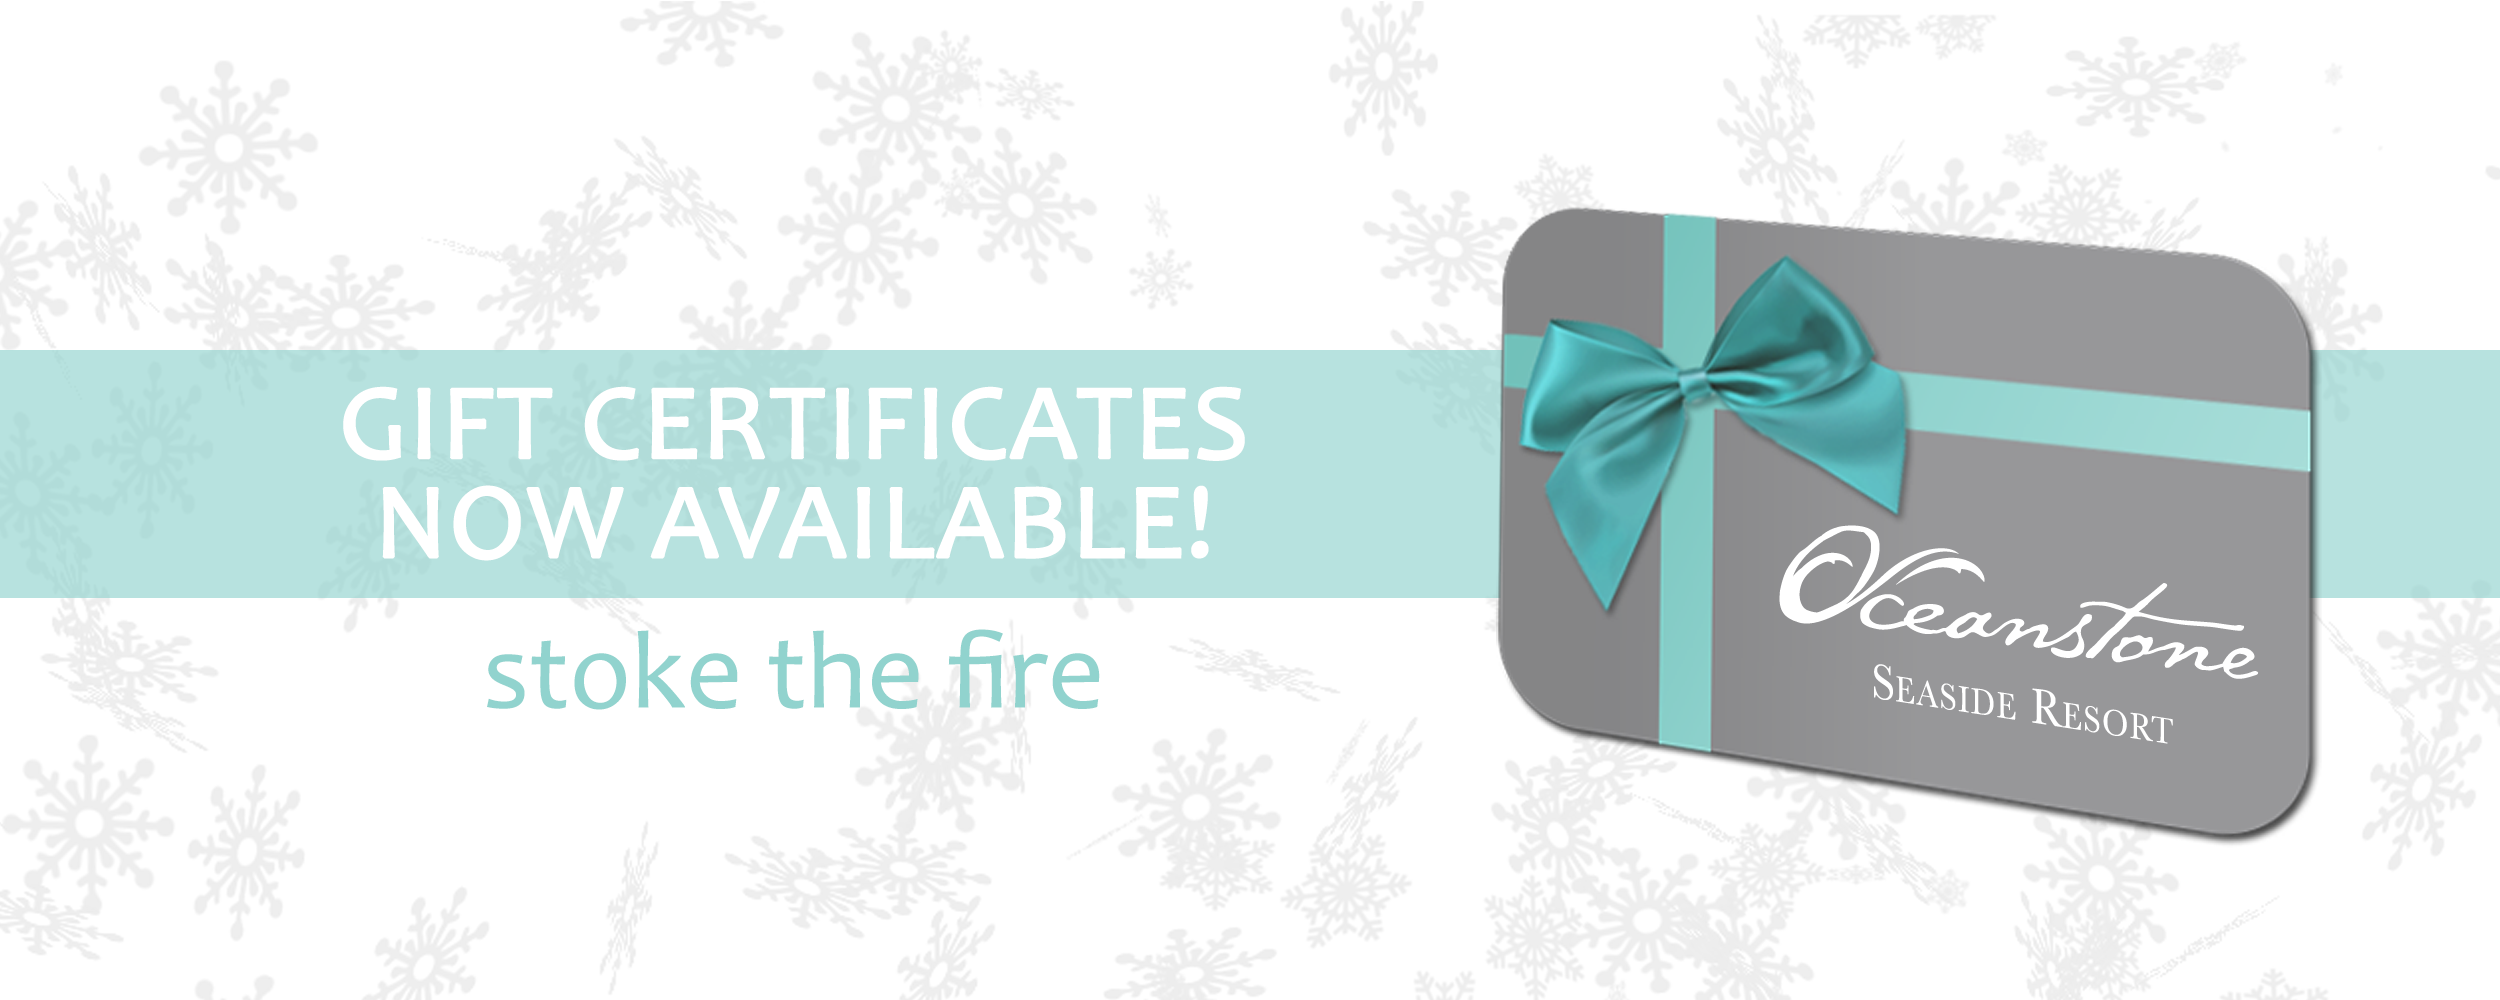 Gift Certificates For Oceanstone Seaside Resort Perfect For The